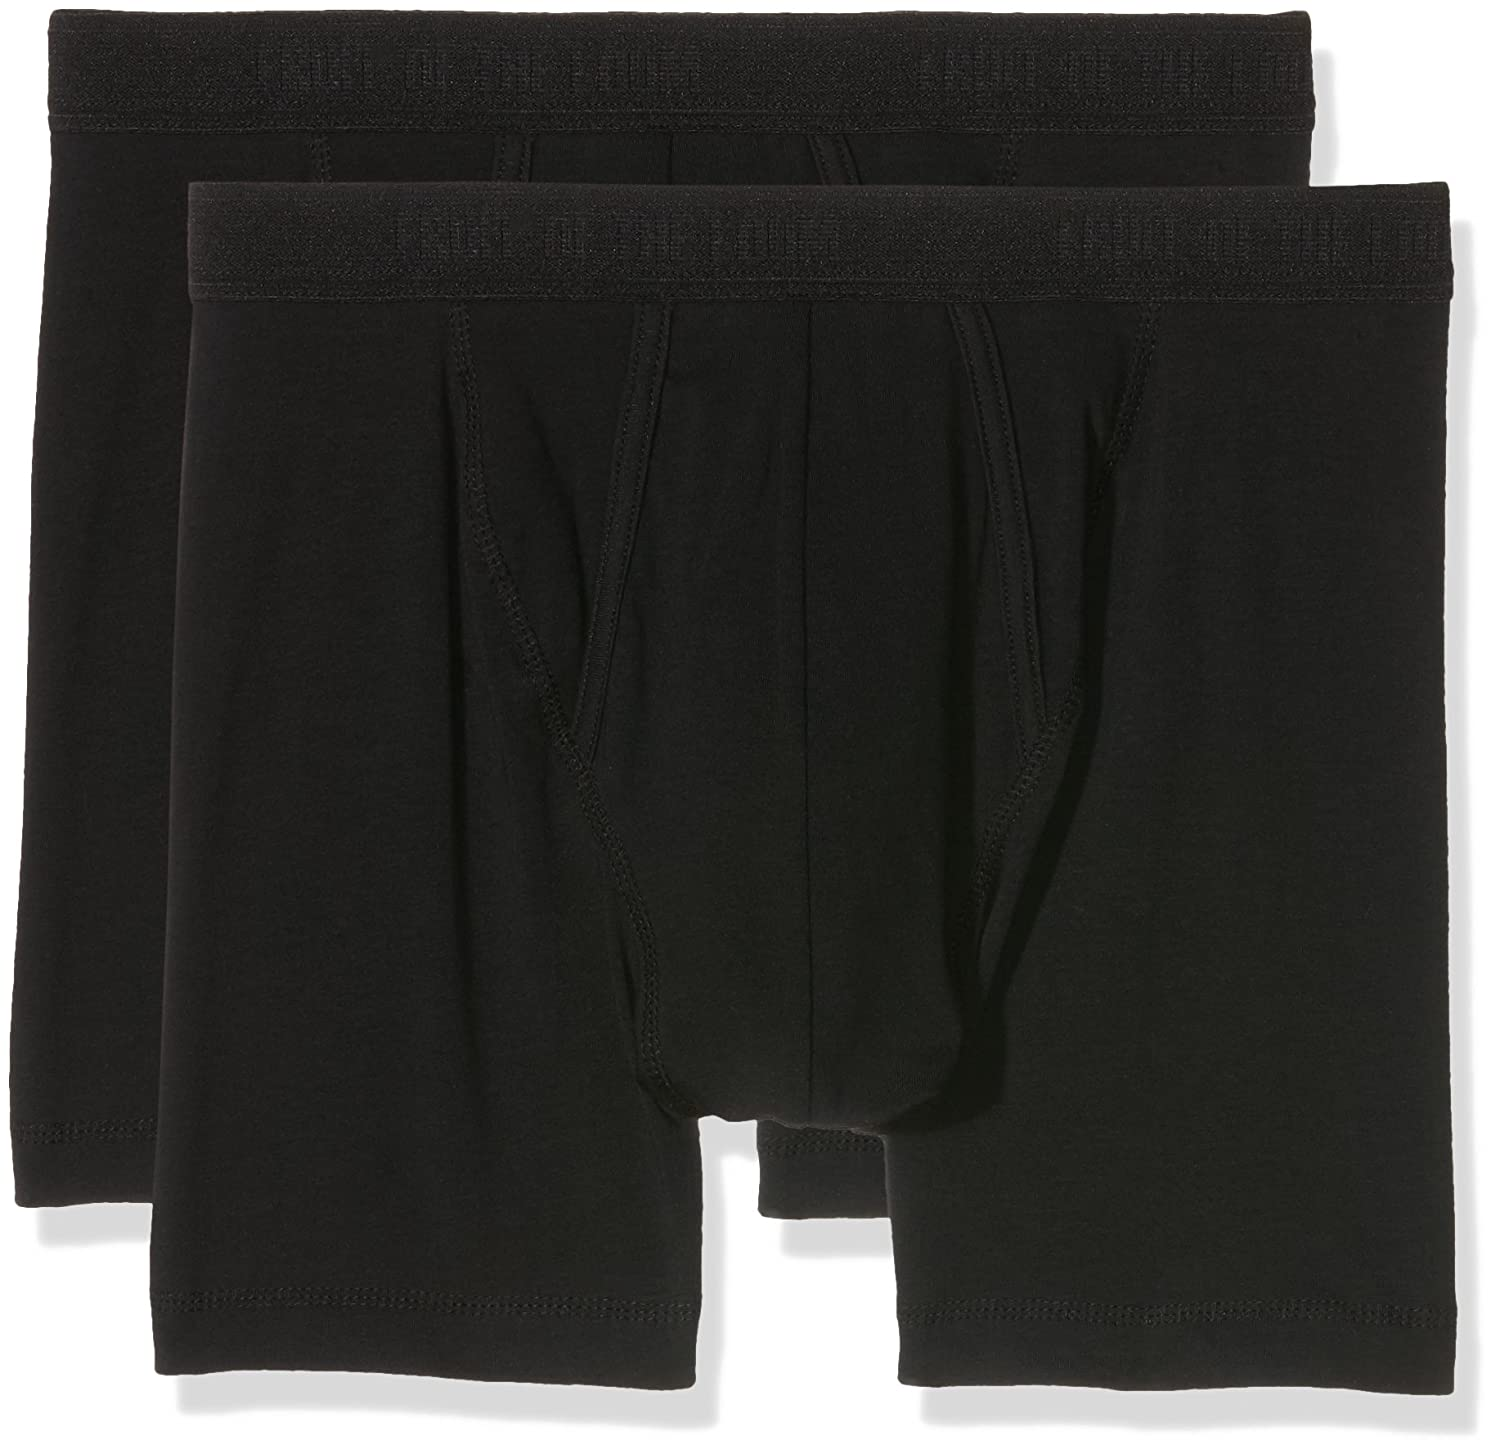 TALLA XL. Fruit of the Loom Boxer Shorts, Calzoncillos para Hombre